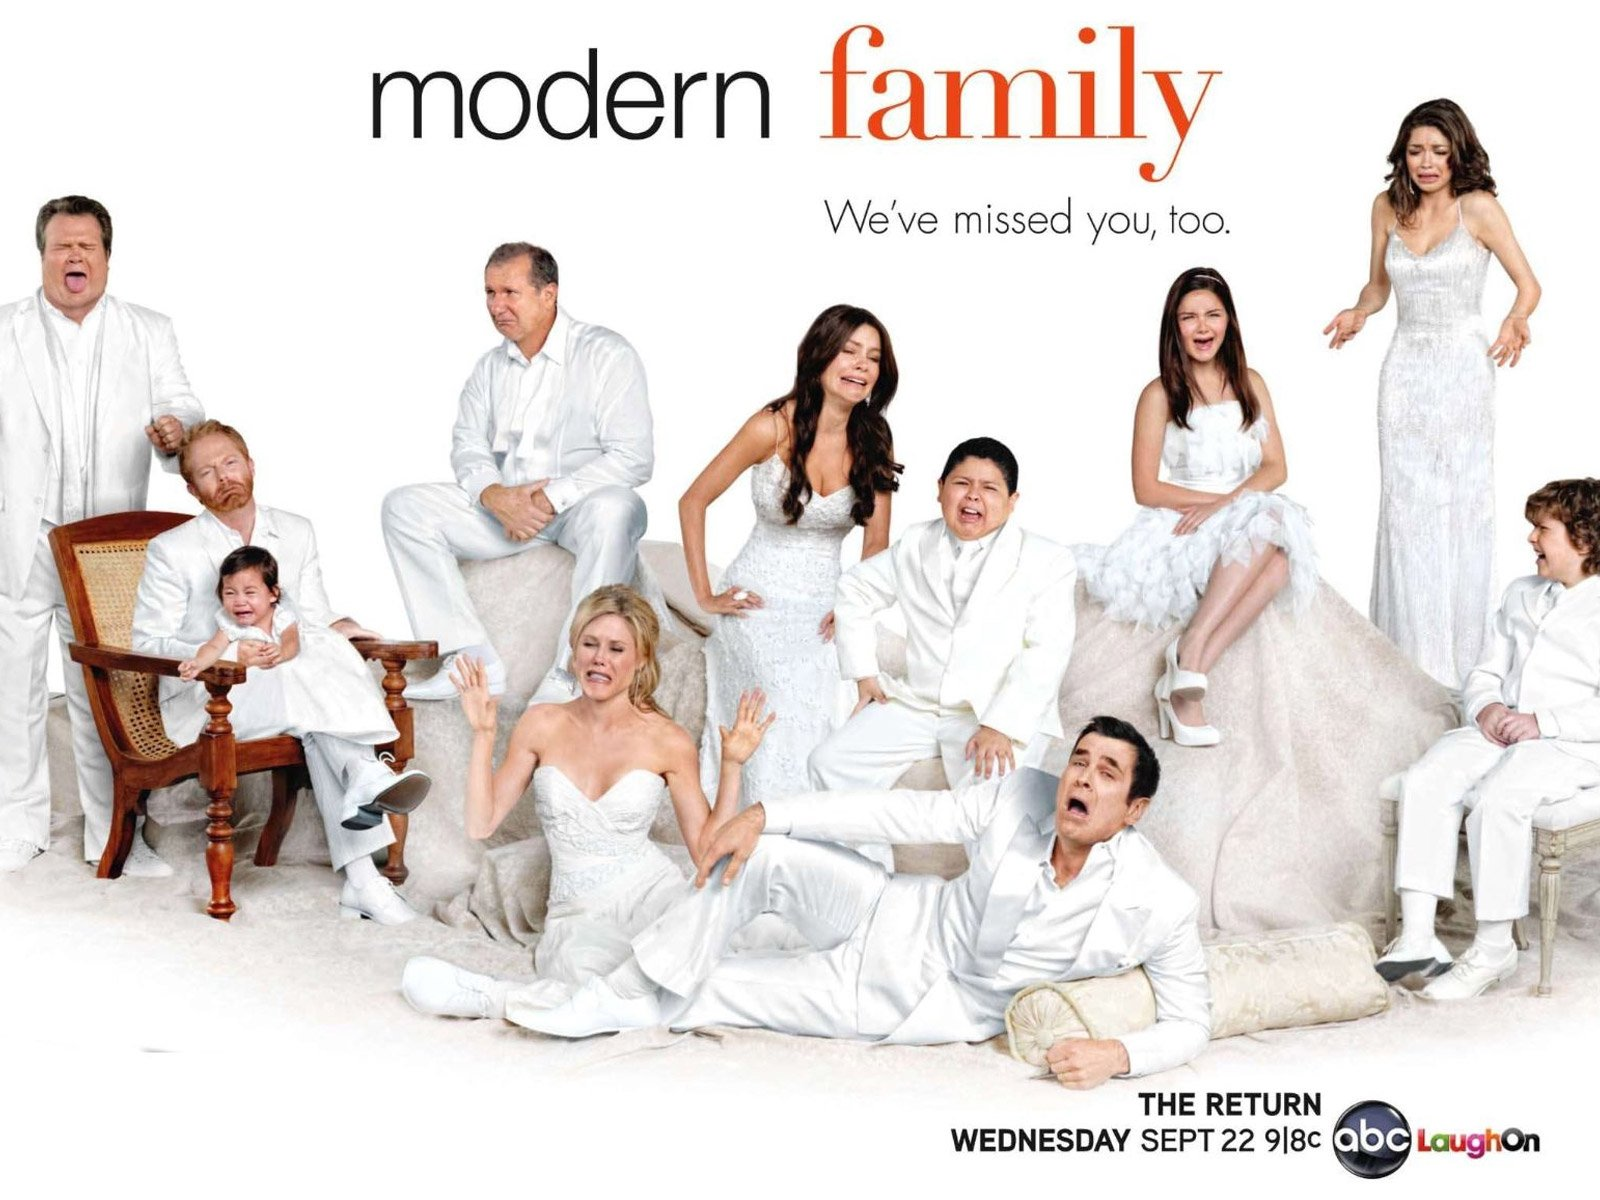 modern family images wallpaper - photo #33